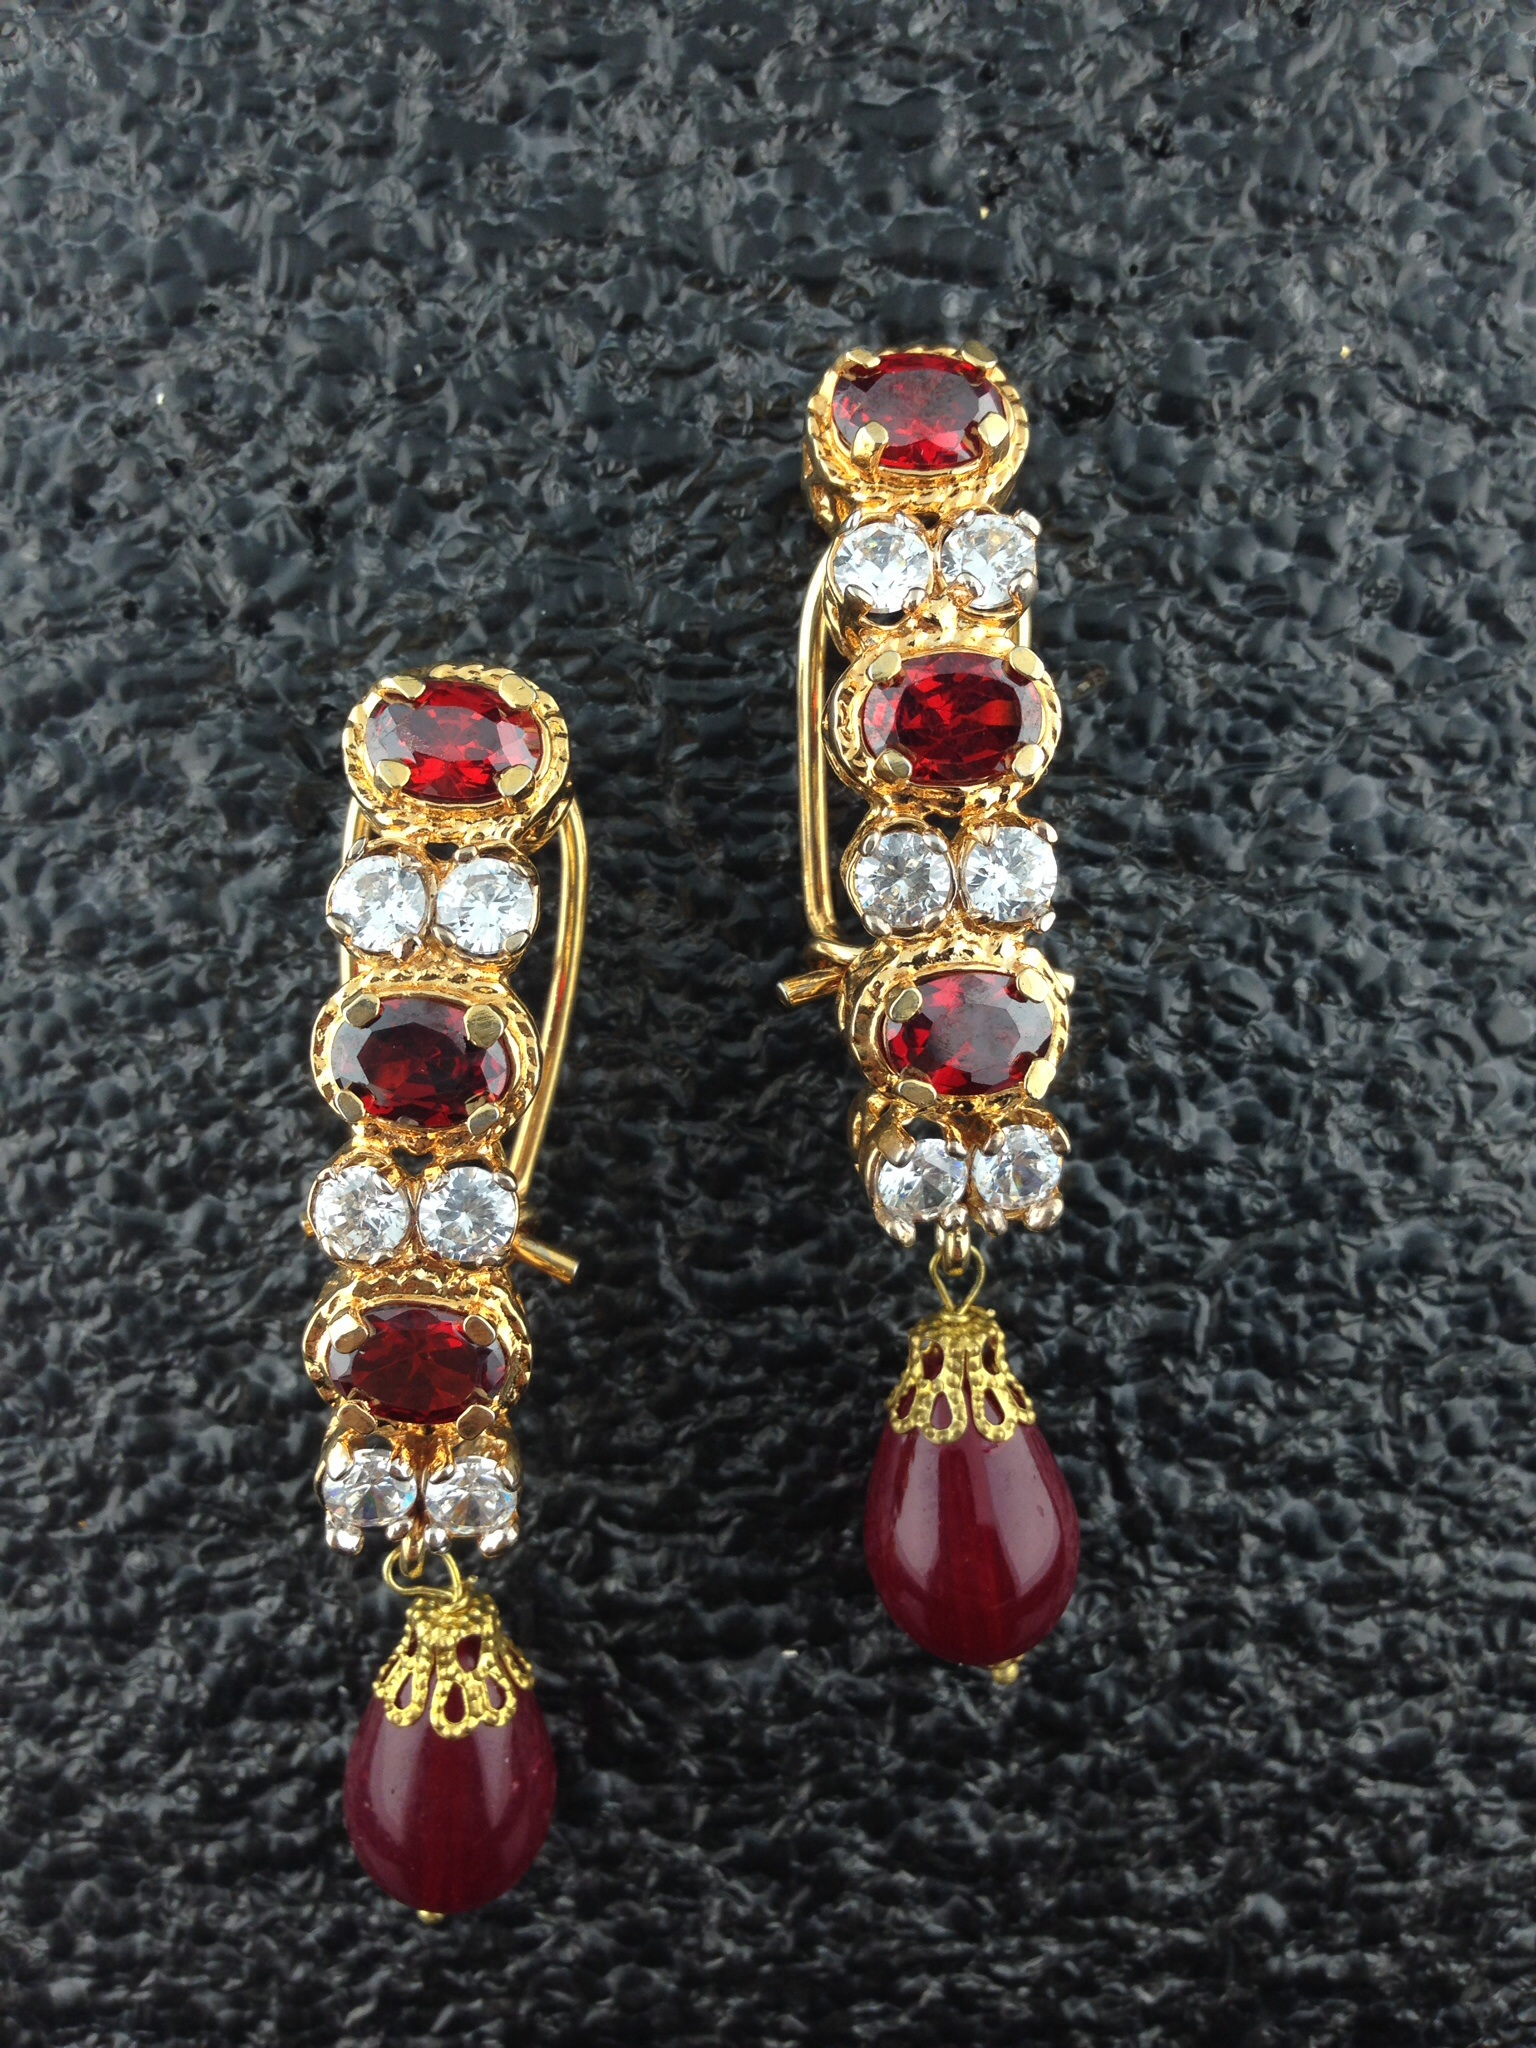 Kundan Earrings With Rubies And Crystals